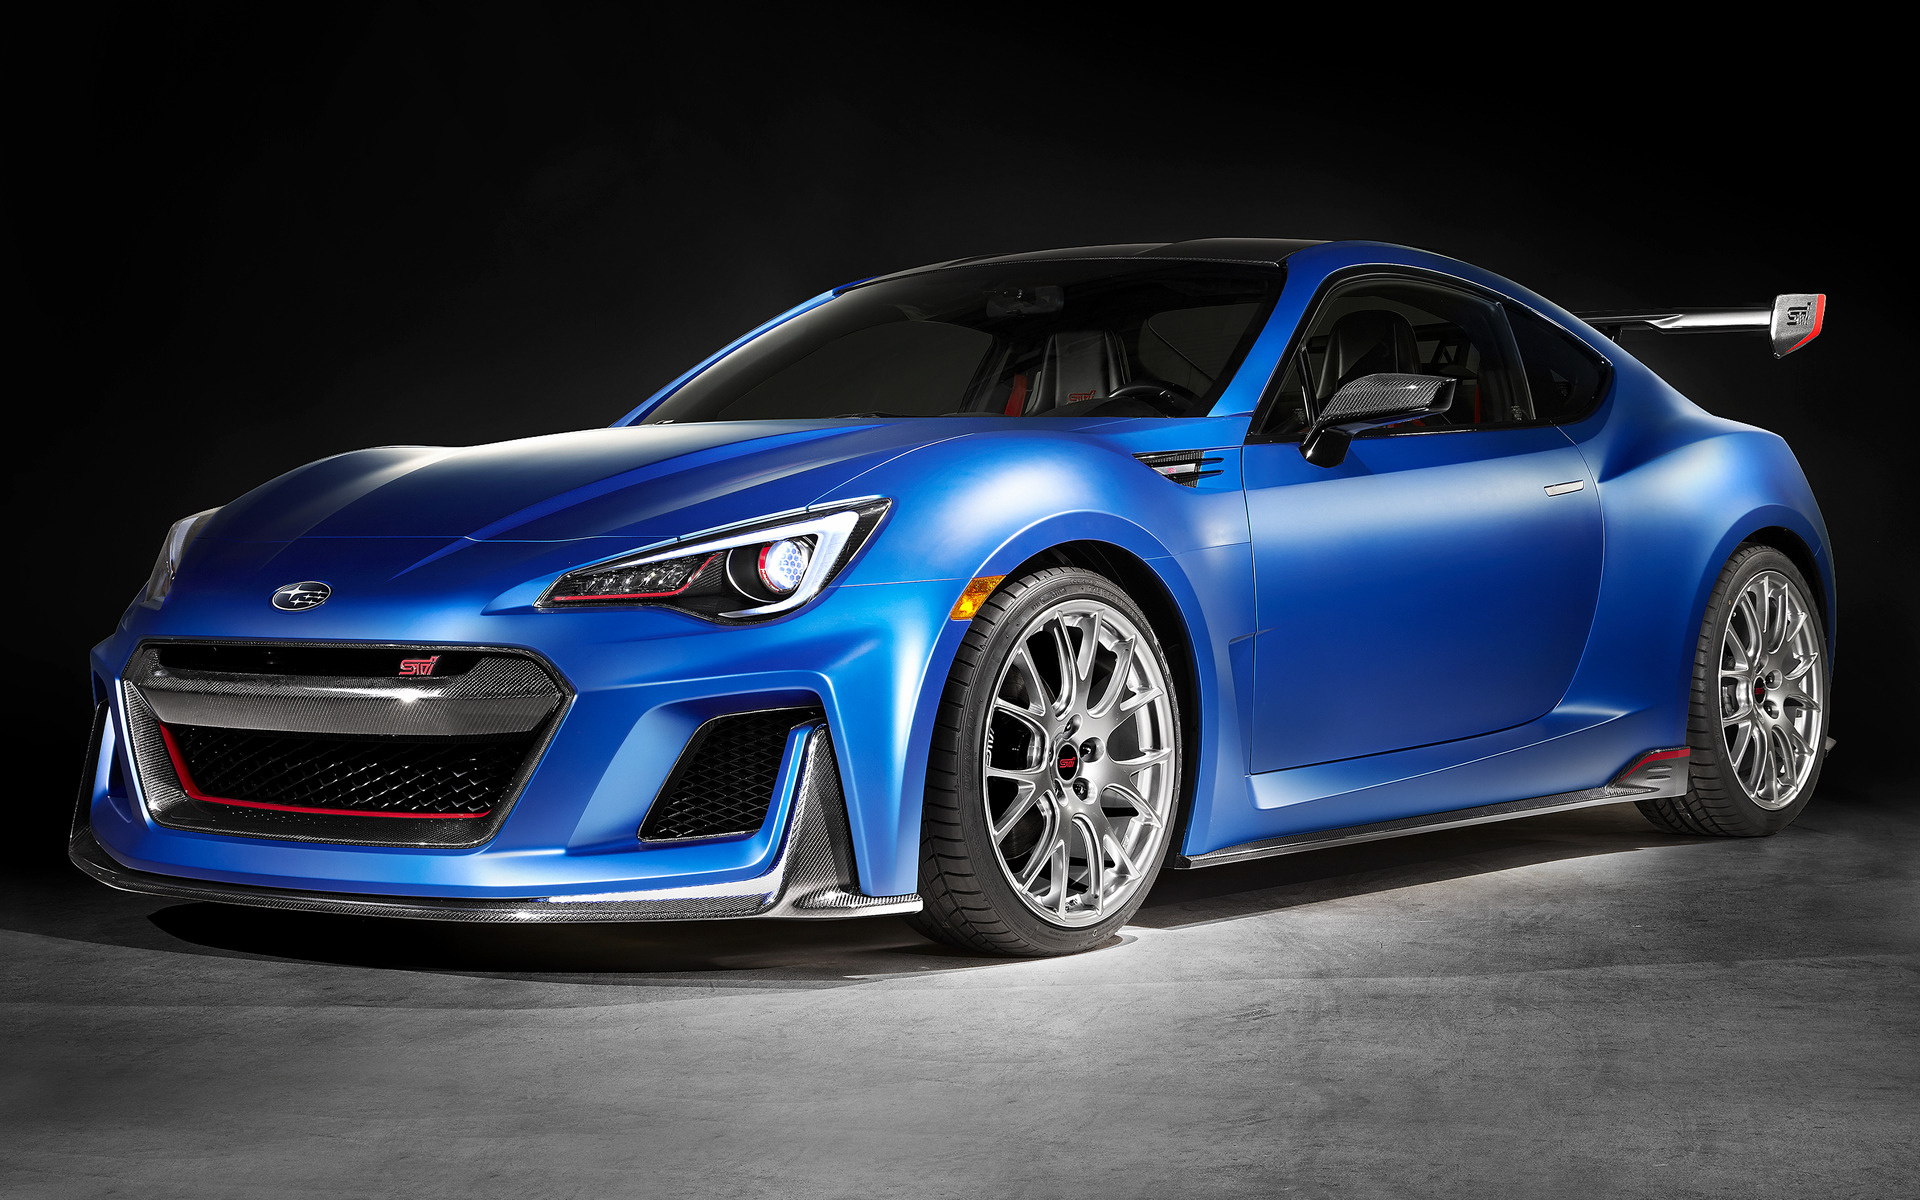 2015 Subaru BRZ STI Performance Concept - Wallpapers and ...